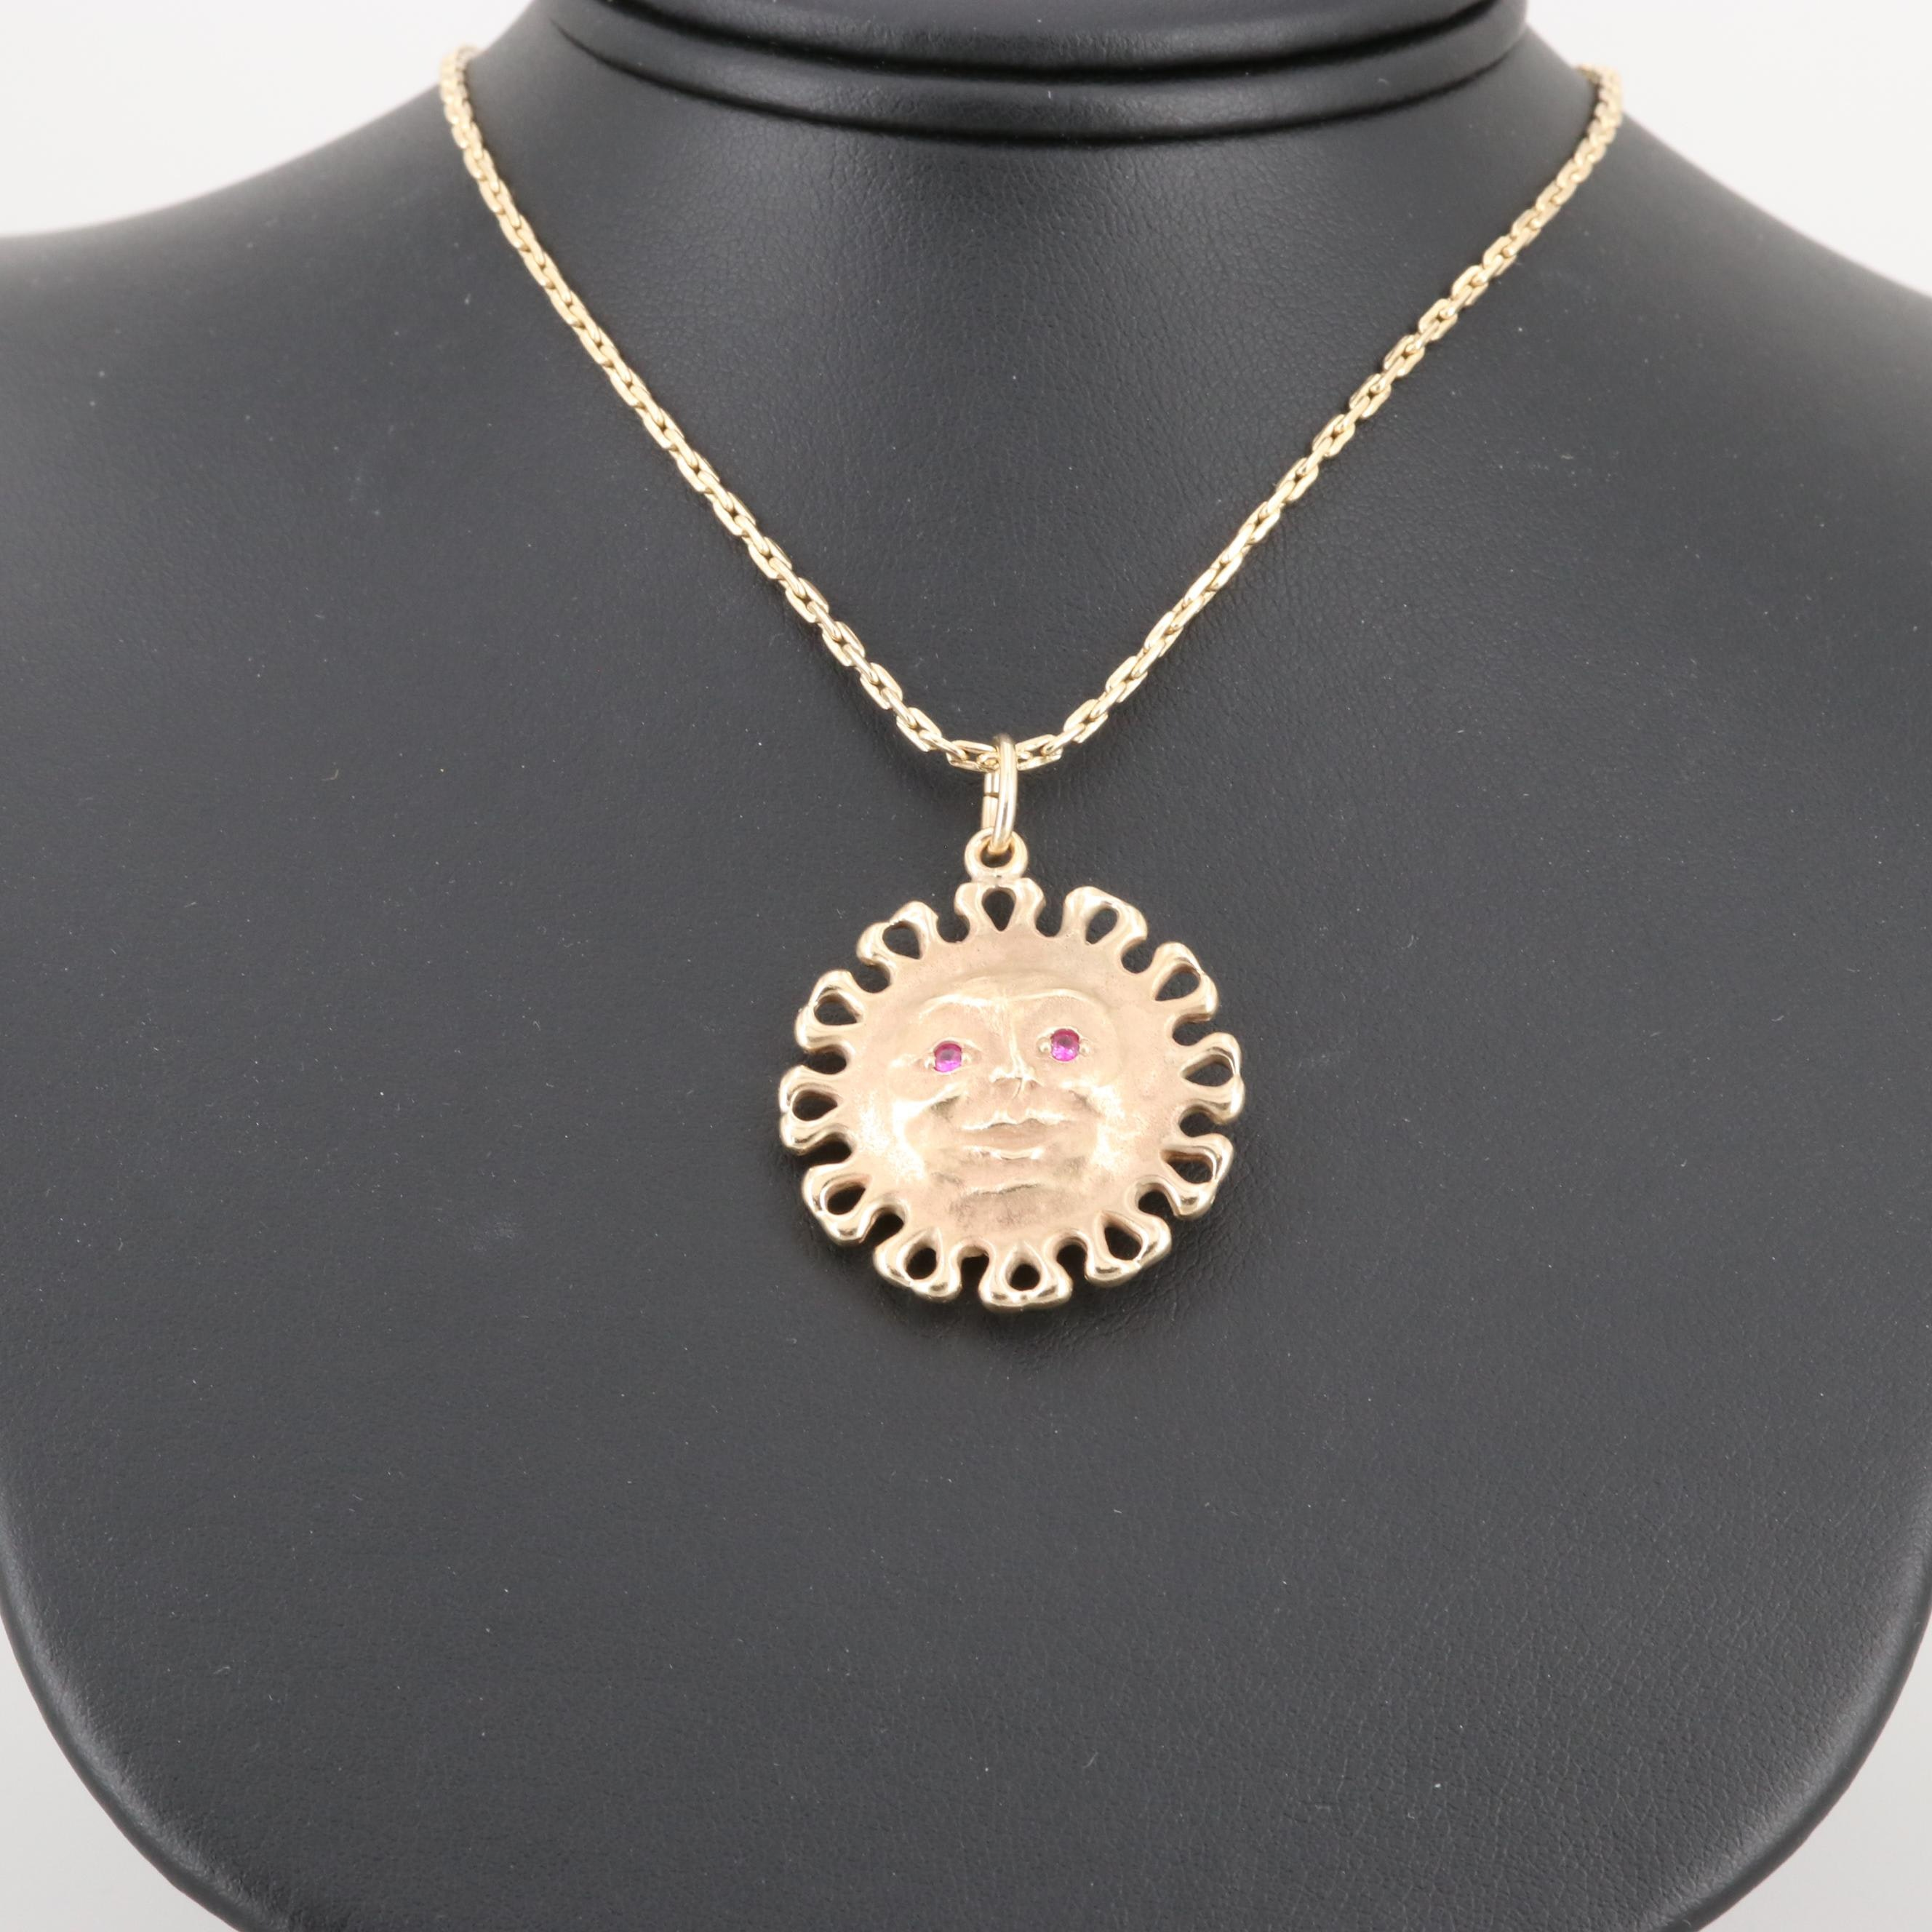 14K Yellow Gold Synthetic Sapphire and Synthetic Ruby Sun Pendant Necklace